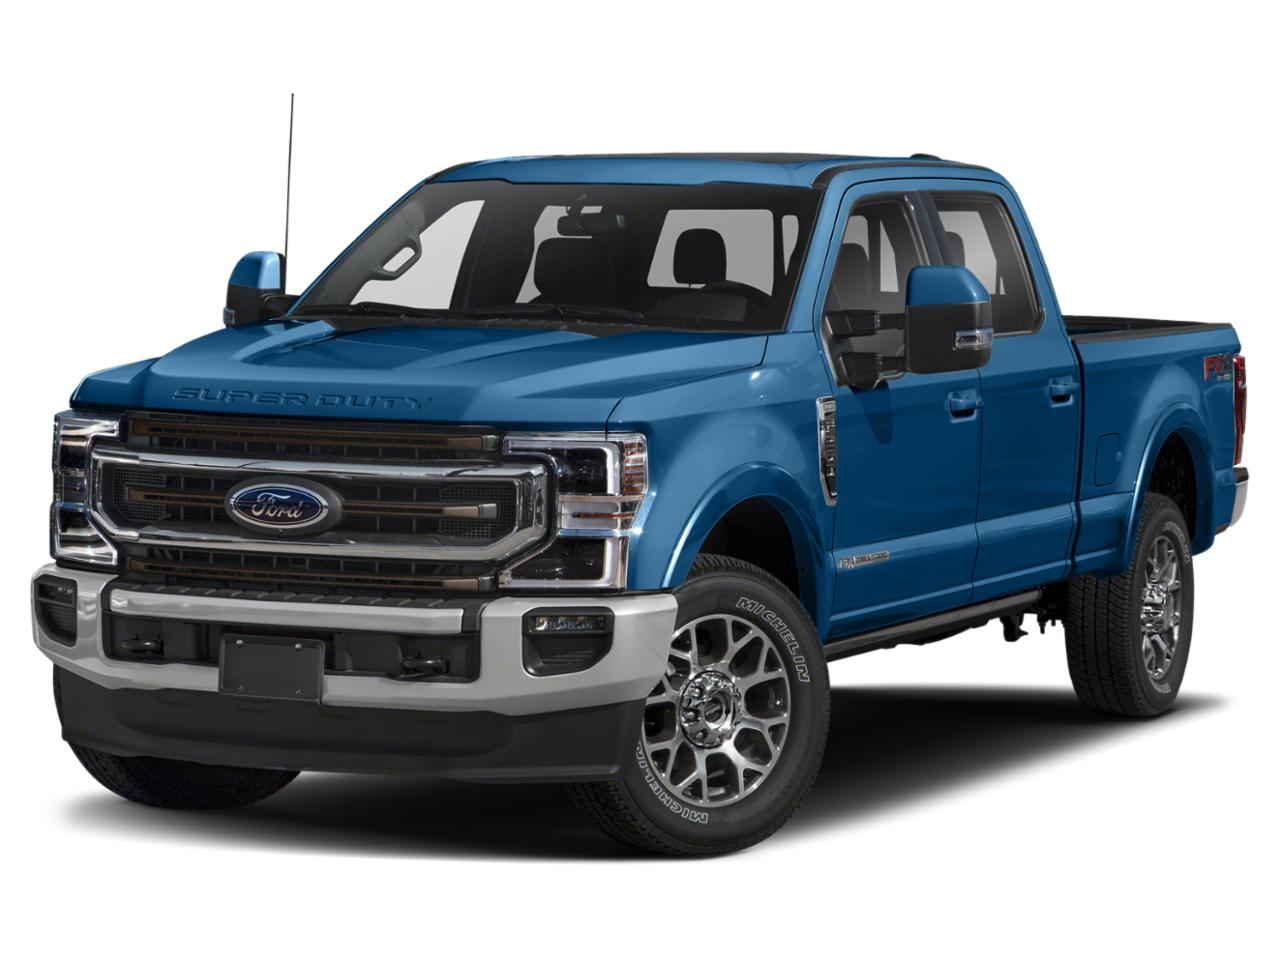 2021 Ford Super Duty F-250 SRW Vehicle Photo in Neenah, WI 54956-3151